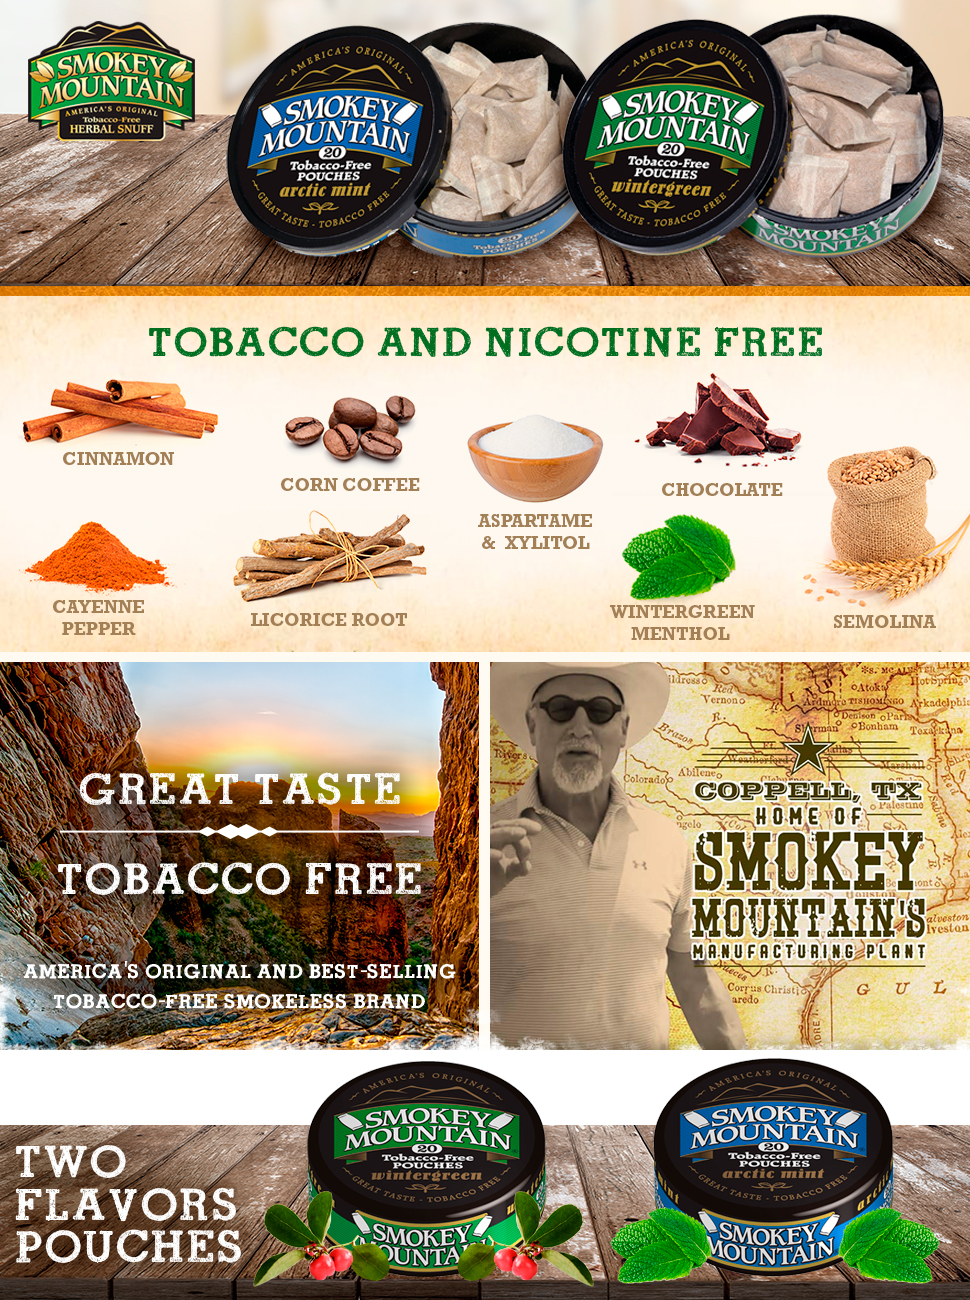 Smokey Mountain Herbal Snuff Pouches - Arctic Mint - 10-Can Box -  Nicotine-Free and Tobacco -